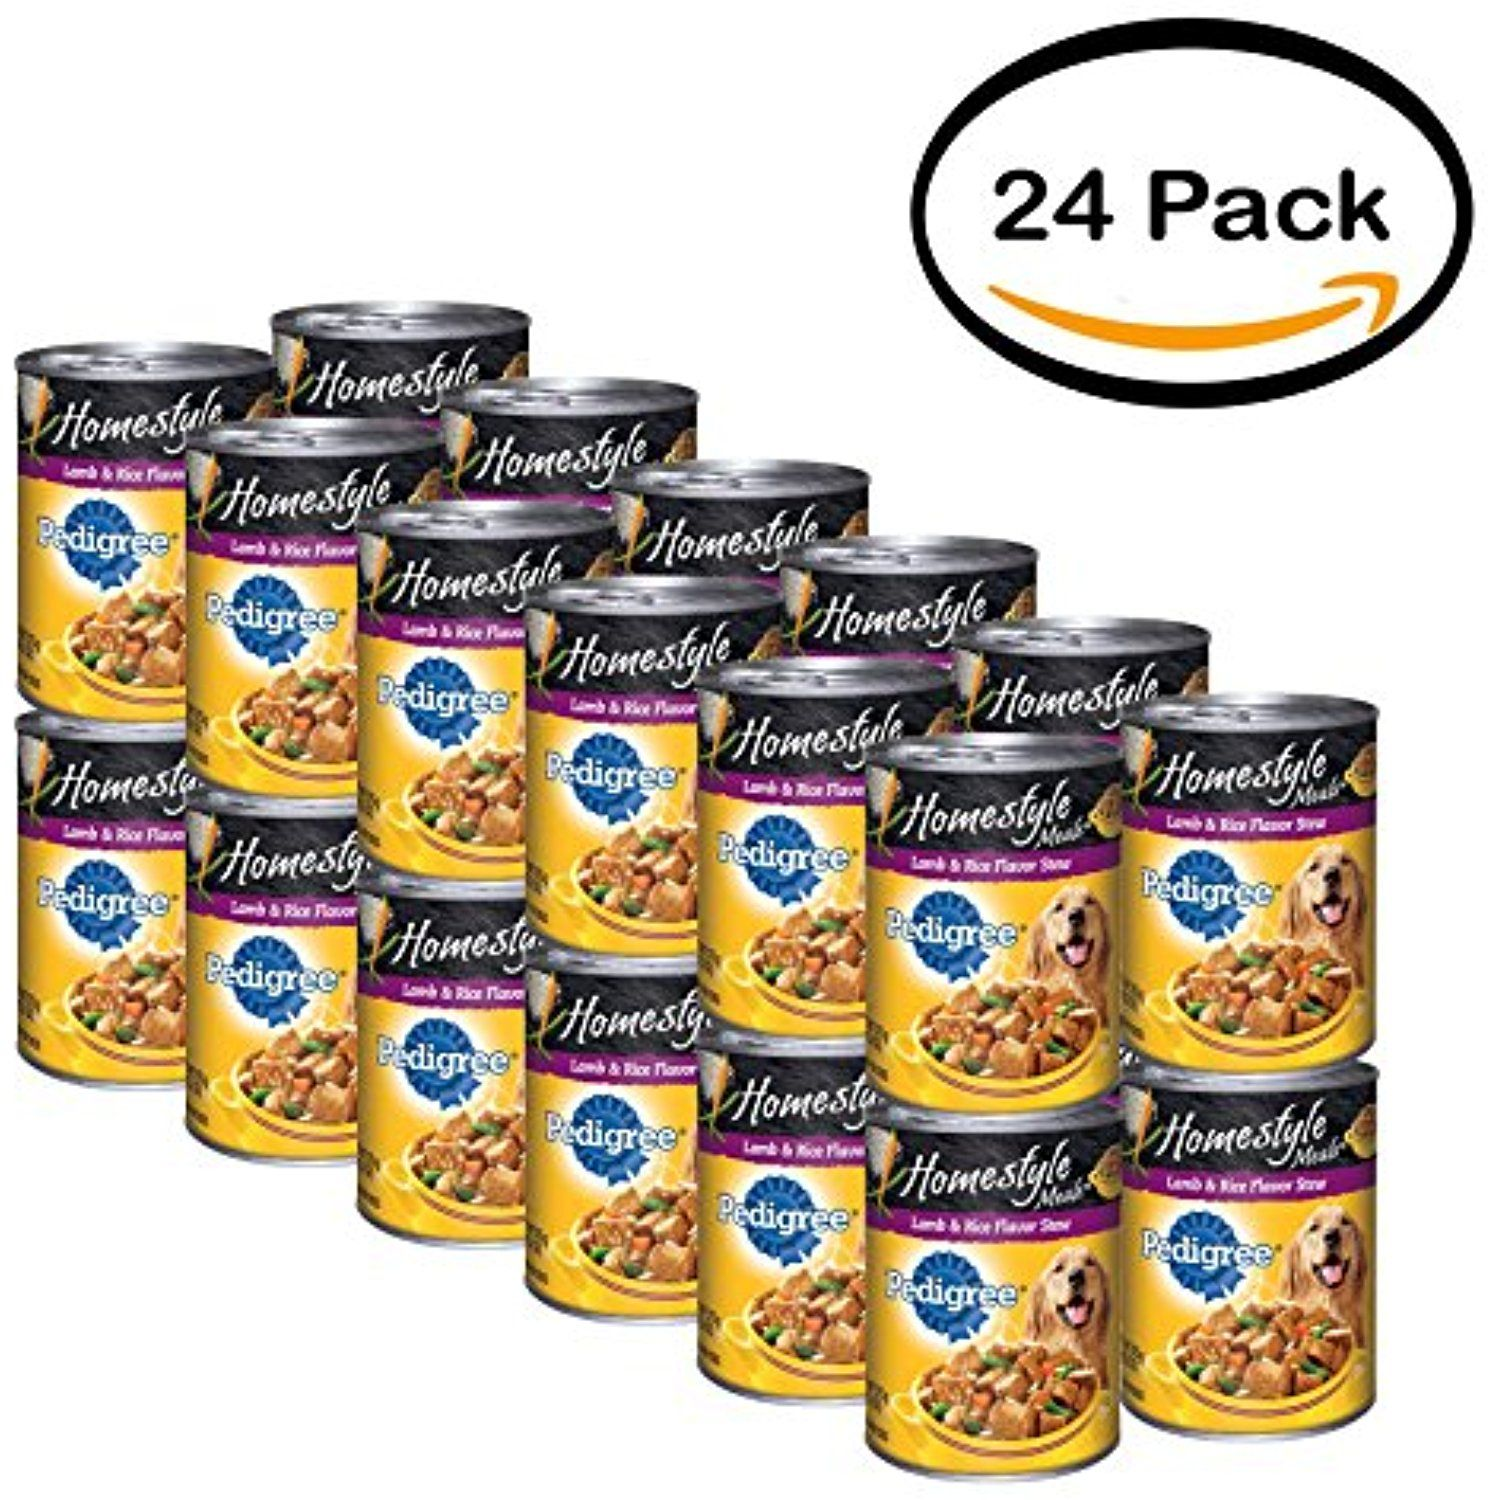 Pack of 24 pedigree homestyle meals lamb rice flavor